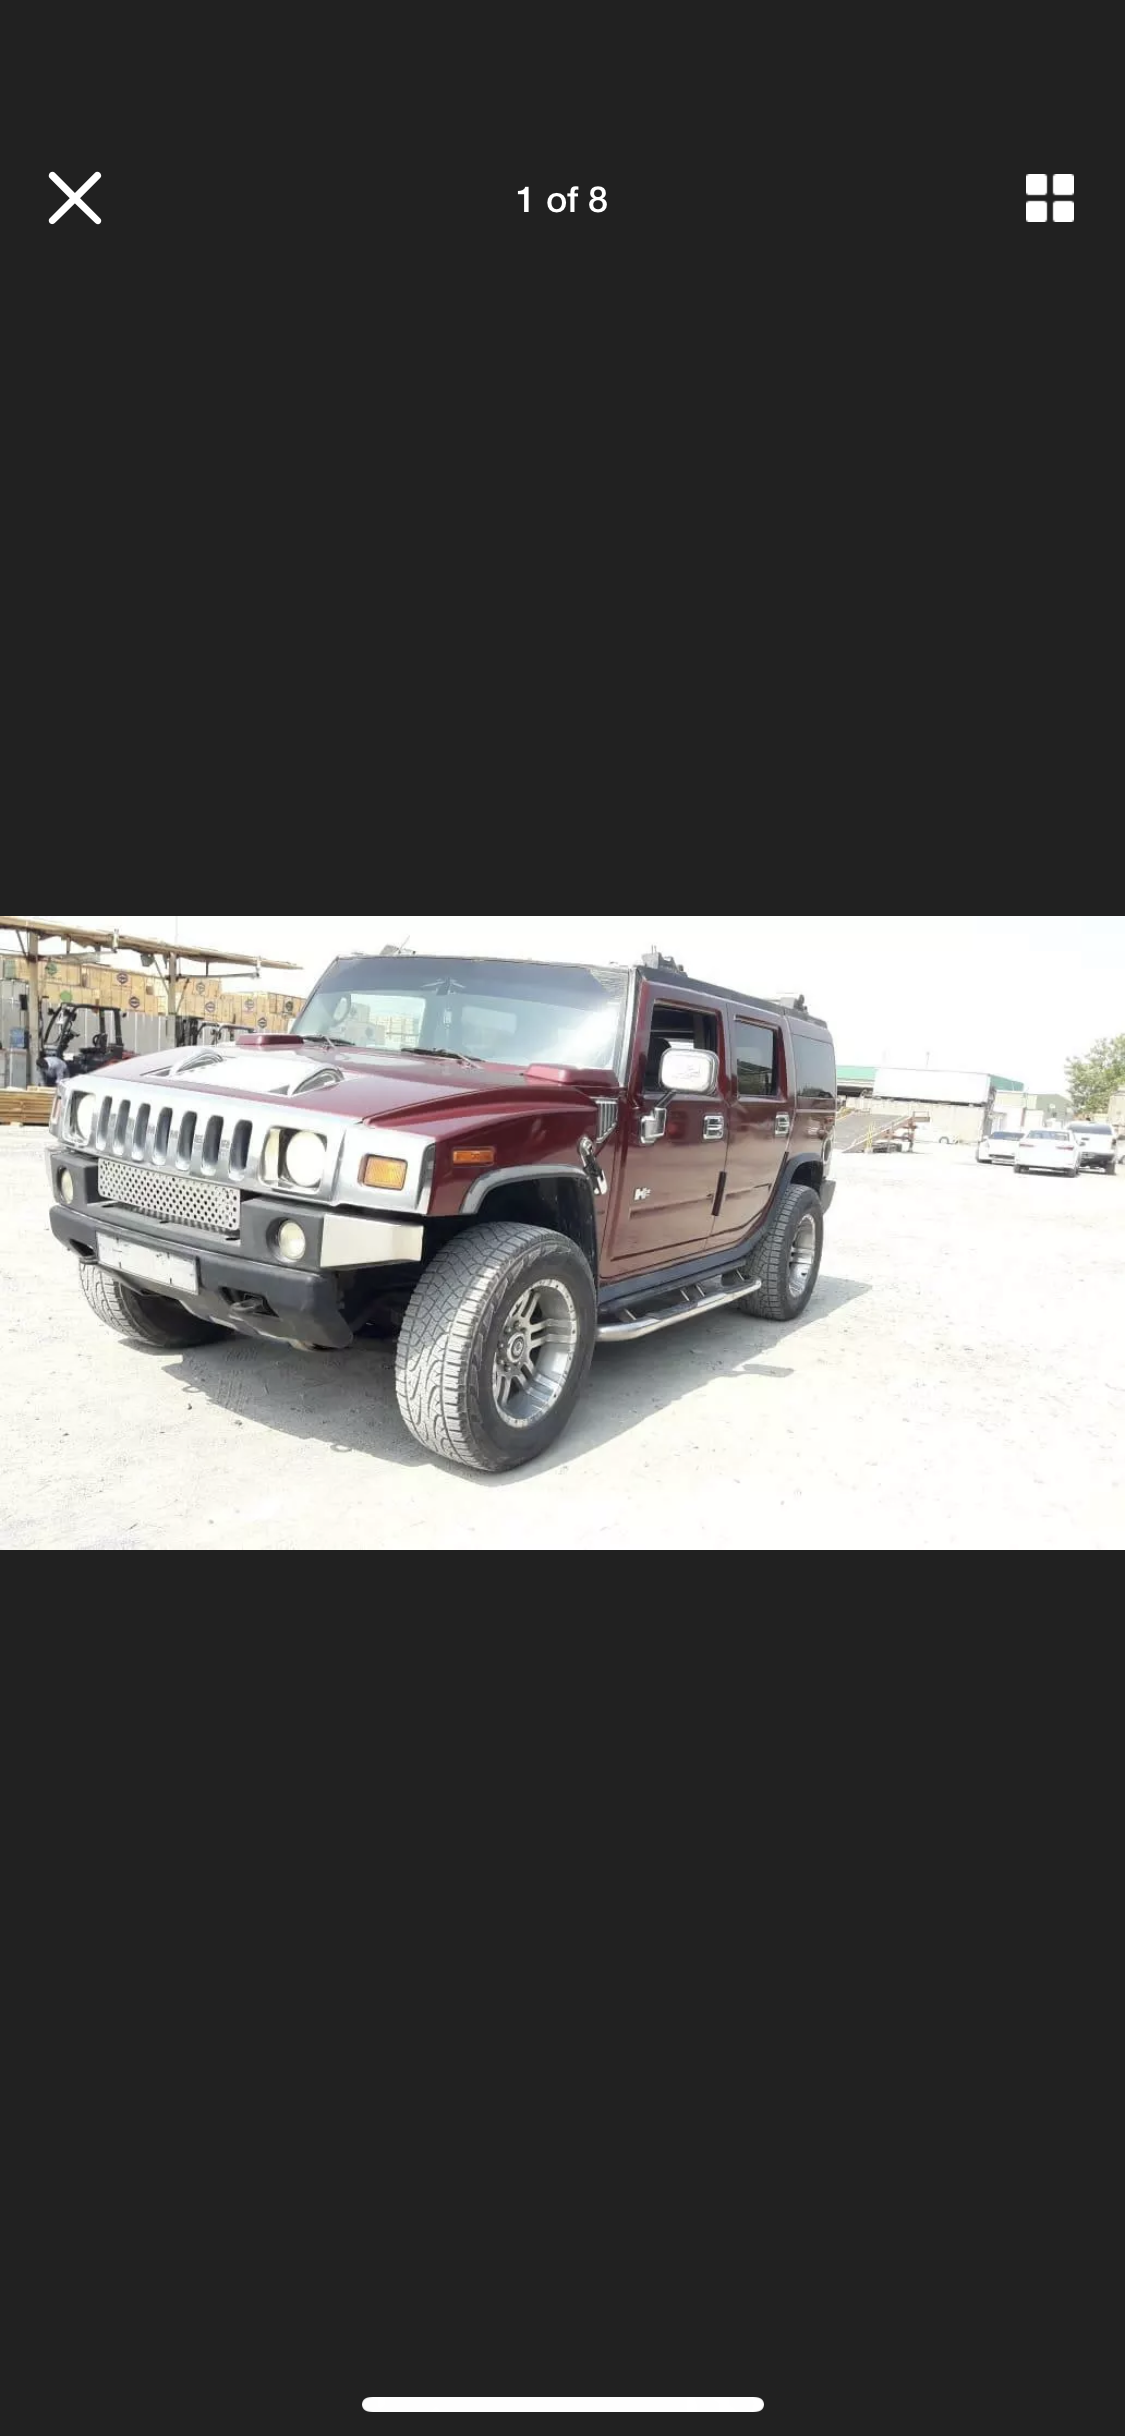 2003 HUMMER H2 6.0 LEFT HAND DRIVE LHD FRESH IMPORT AMERICAN For Sale (picture 1 of 6)